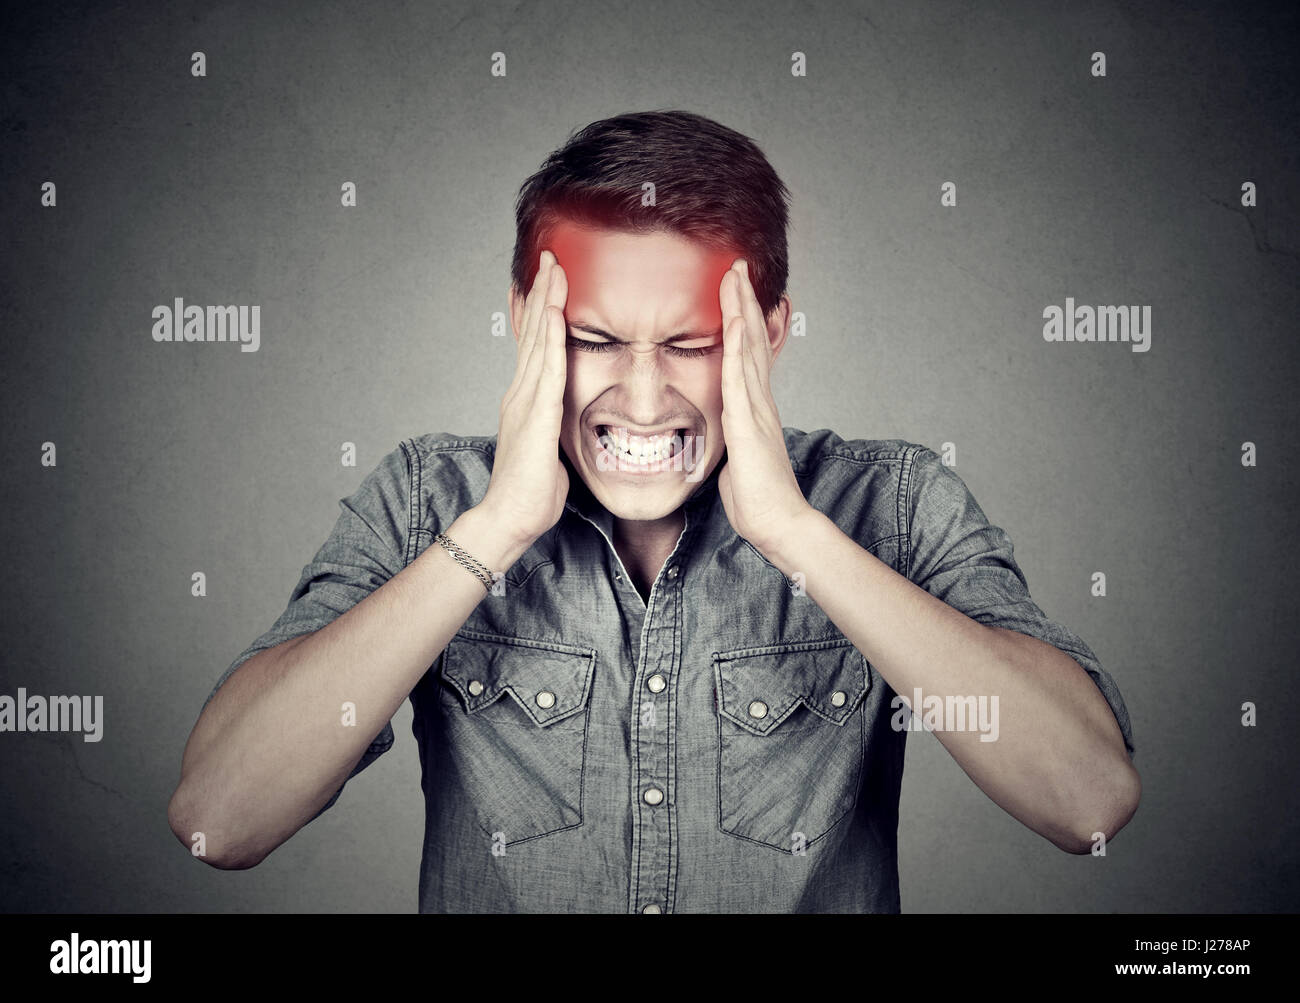 Stressed man with headache isolated on gray wall background - Stock Image